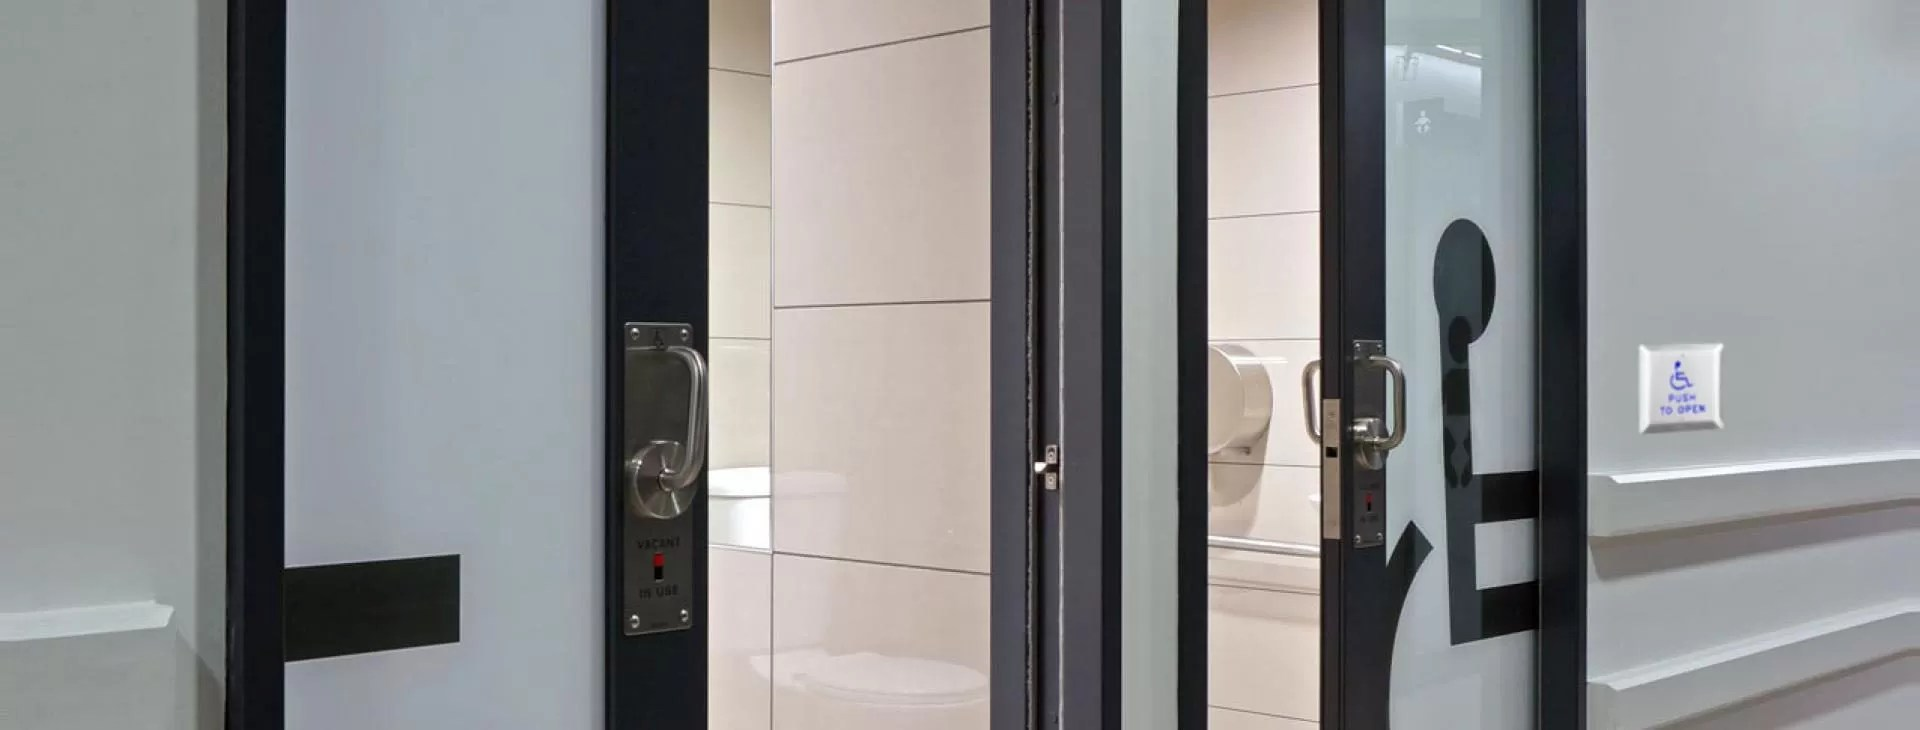 Automatic Handicap Washroom Doors Operator Toronto Best